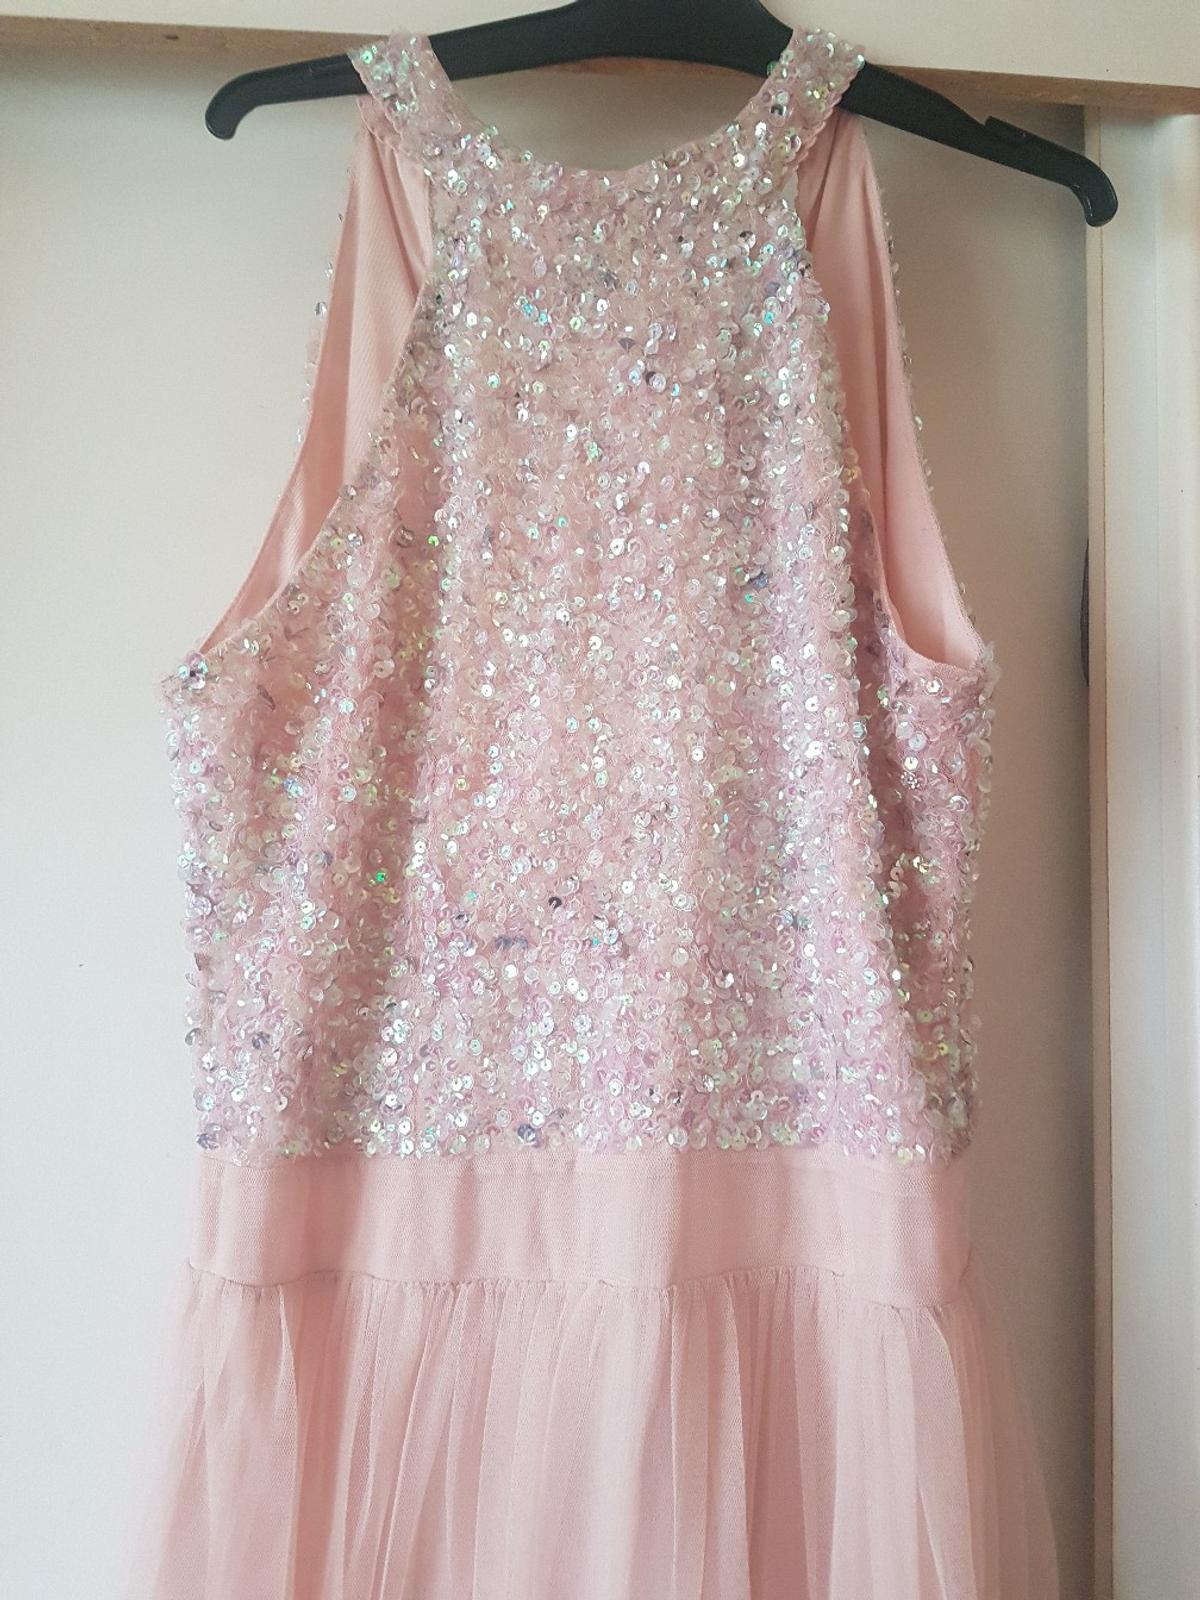 bfa3a30eb2204 Sistaglam Selena Prom/evening dress size 12 in WV2 Wolverhampton for ...